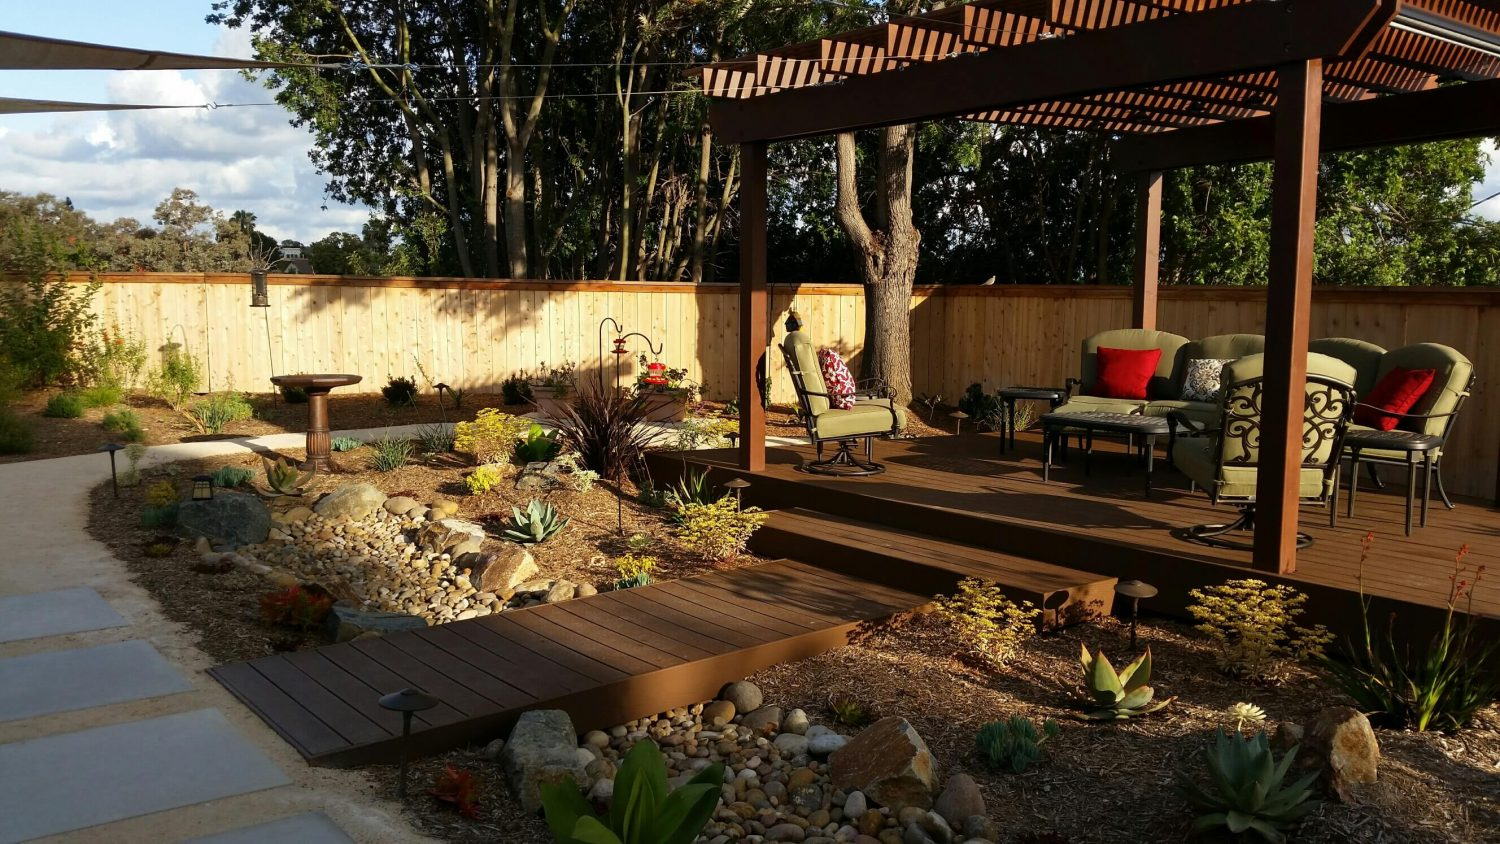 Letz Design San Diego Landscape Designer Example of Backyard